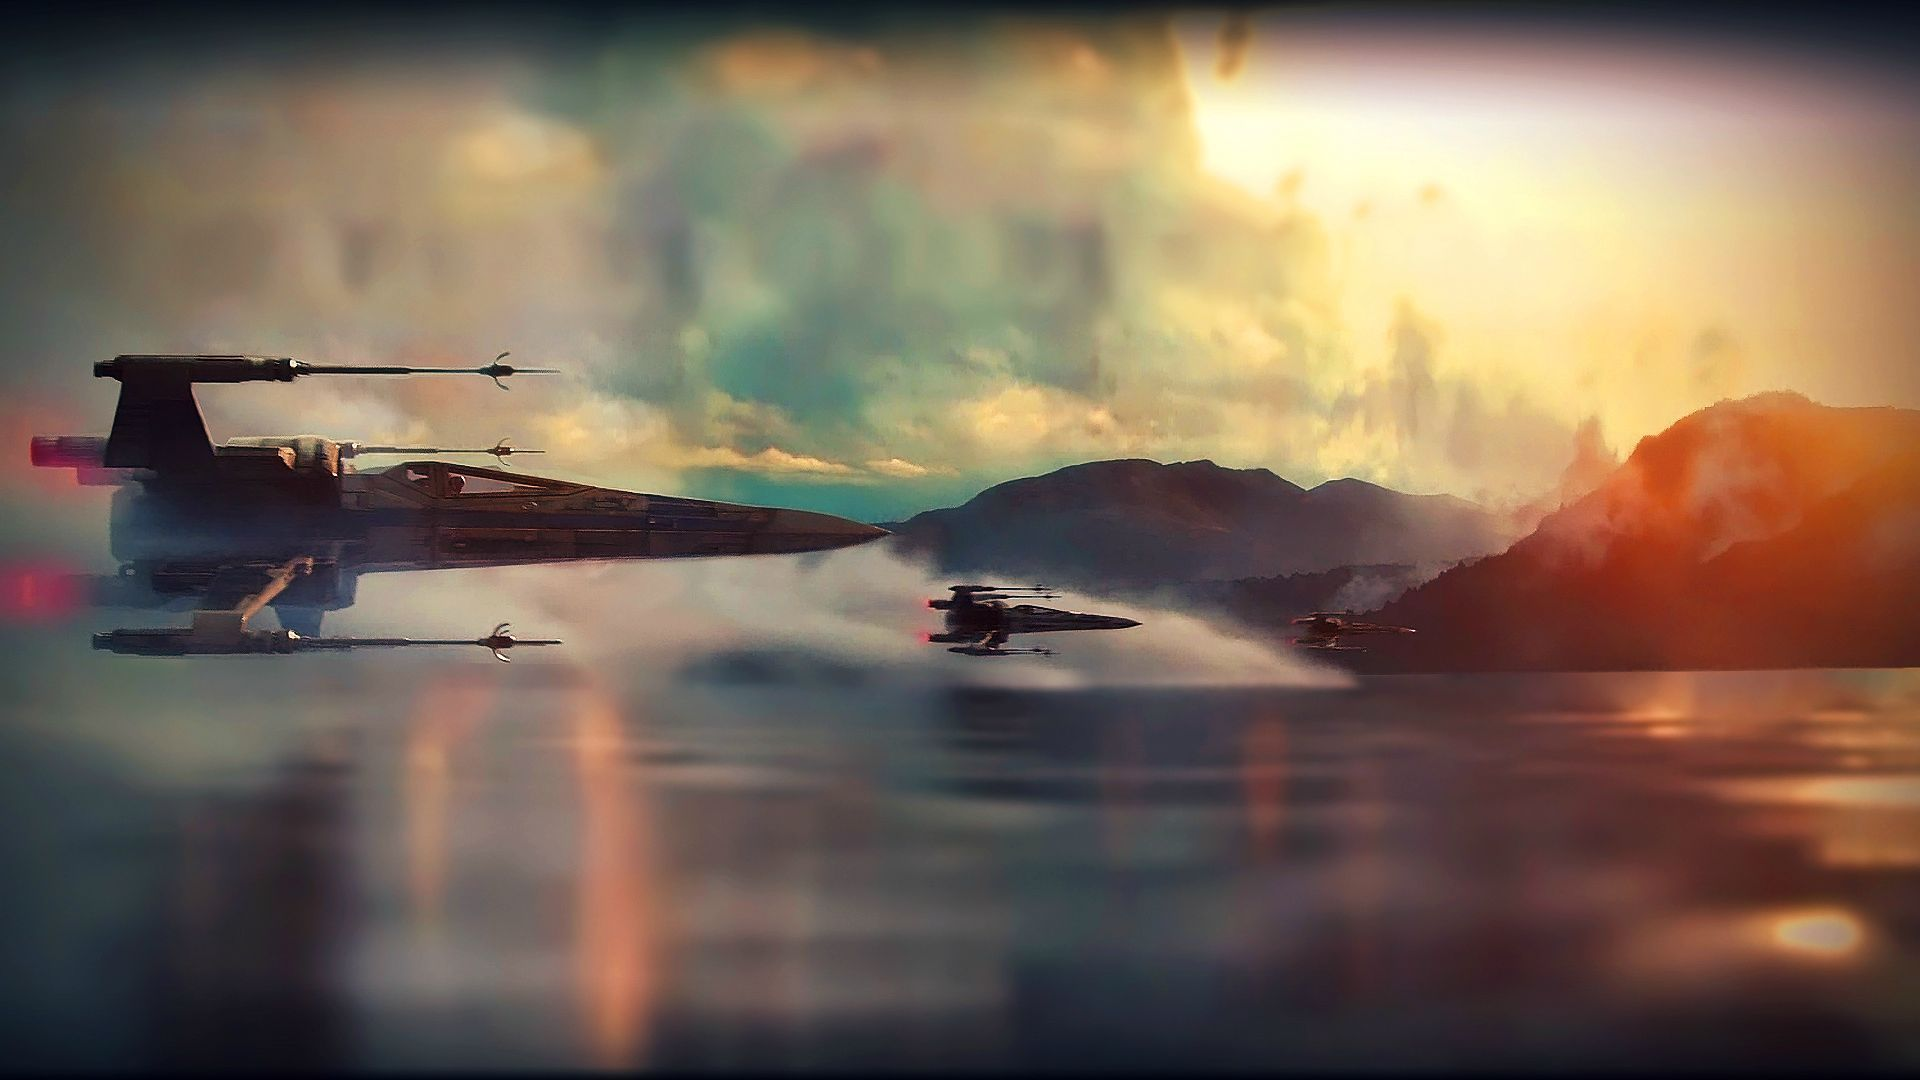 Star Wars Wallpapers The Force Awakens App Star Wars Wallpaper Star Wars Art Star Wars Vii